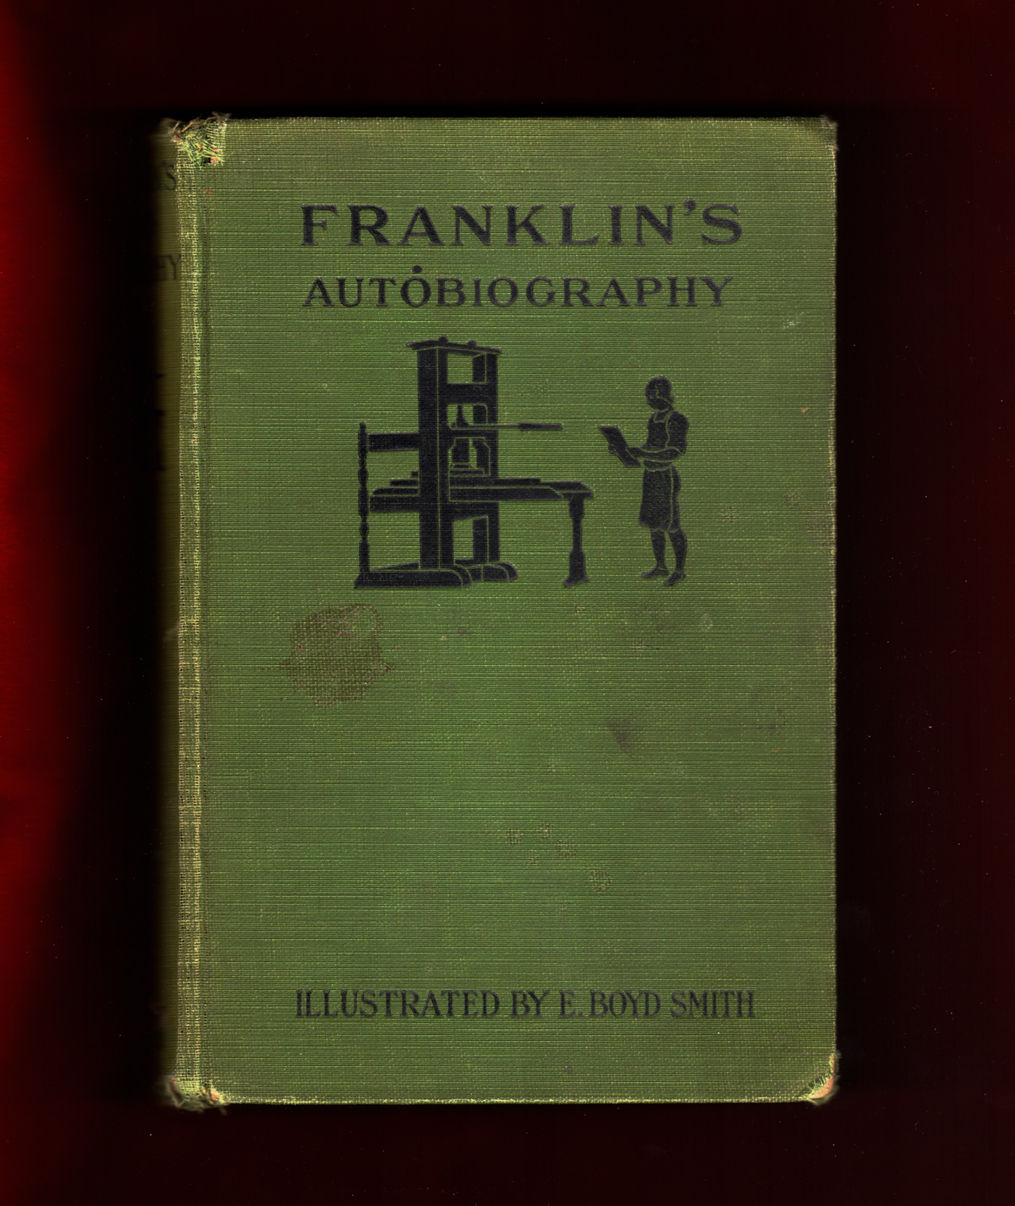 franklins autobiography Benjamin franklin his autobiography 1706-1757 picture introductory note chapter 1 chapter 2 chapter 3 picture chapter 4 chapter 5 chapter 6 chapter 7 picture chapter 8 chapter 9 chapter 10 chapter 11 chapter 12 notes events of his life a short biography the whole autobiography in one file.